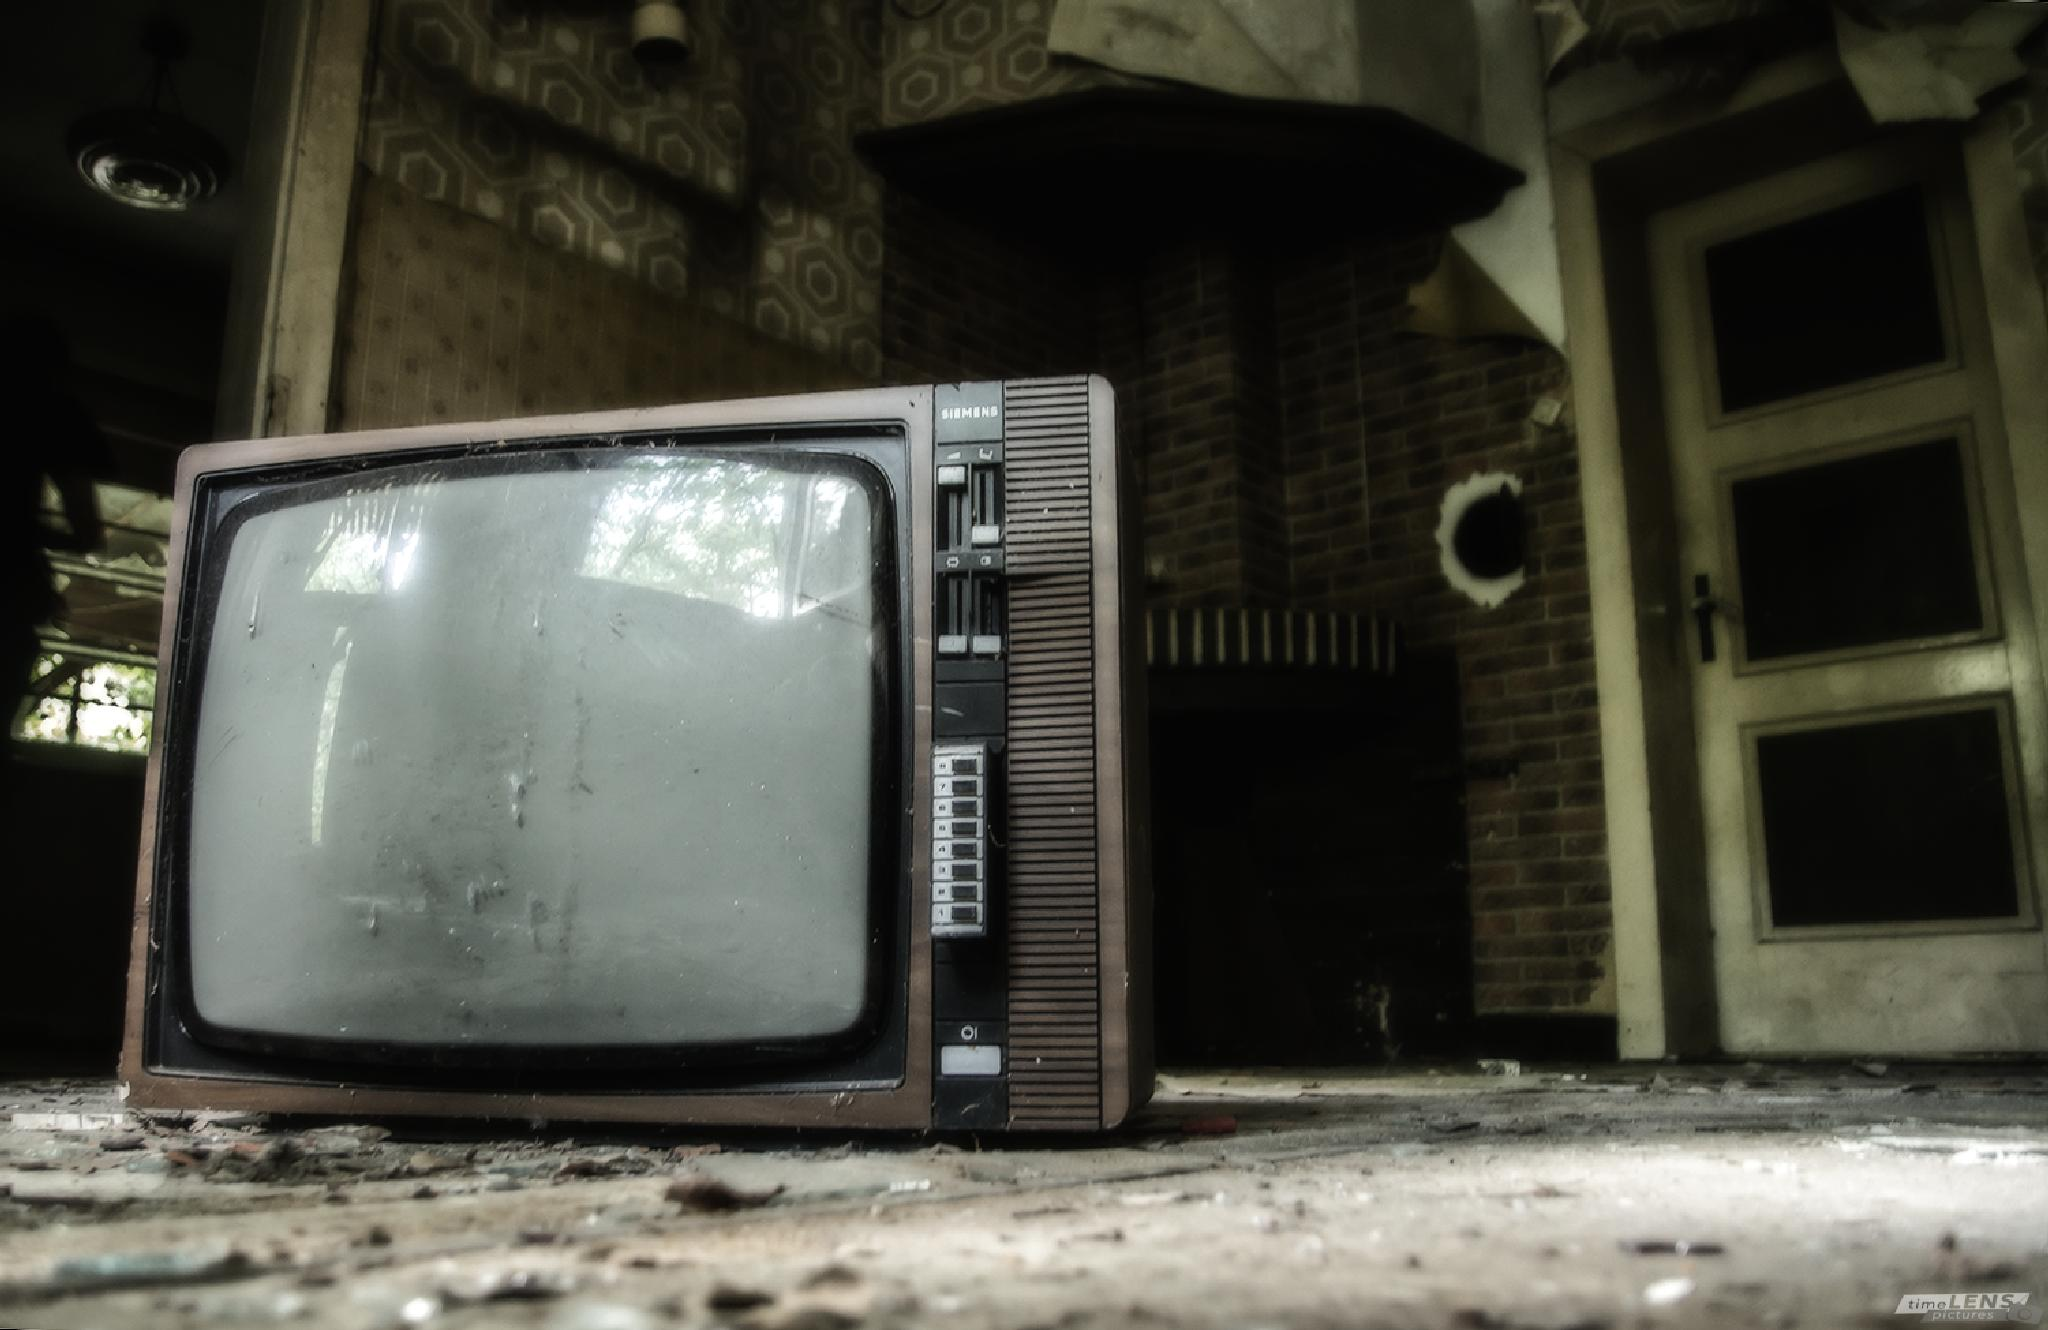 Free TV by timeLENSpictures